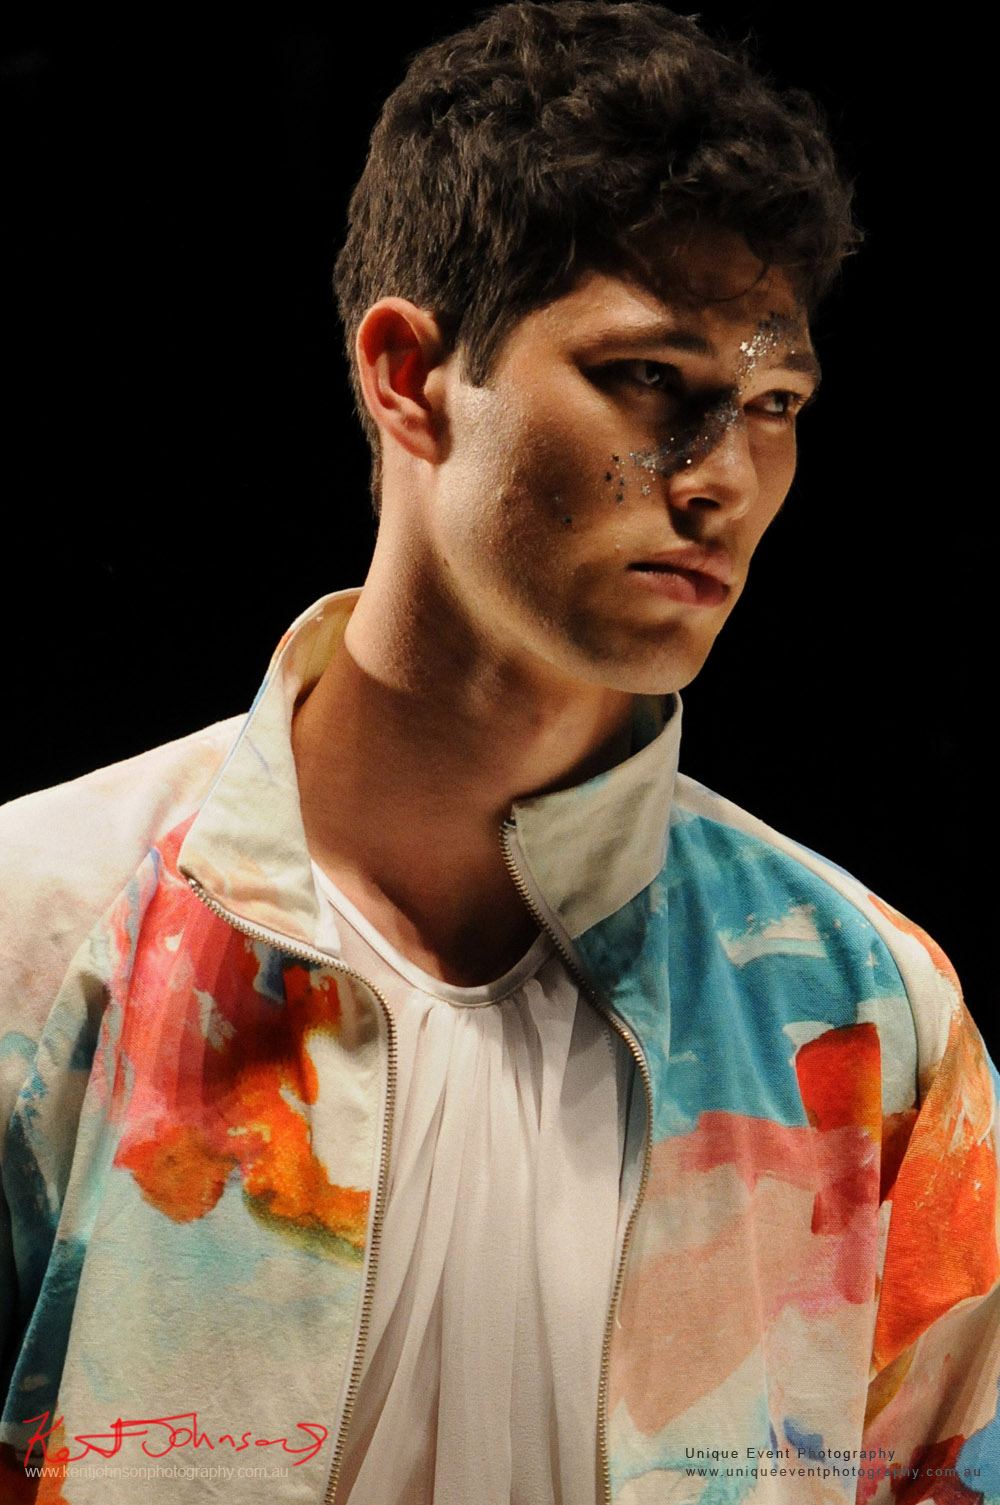 Menswear, silk shirt and watercolour jacket, DE LA MOTTE; Anne De La Motte - Designers from Raffles International Showcase 2016 - MBFWA  Photographed by Kent Johnson.